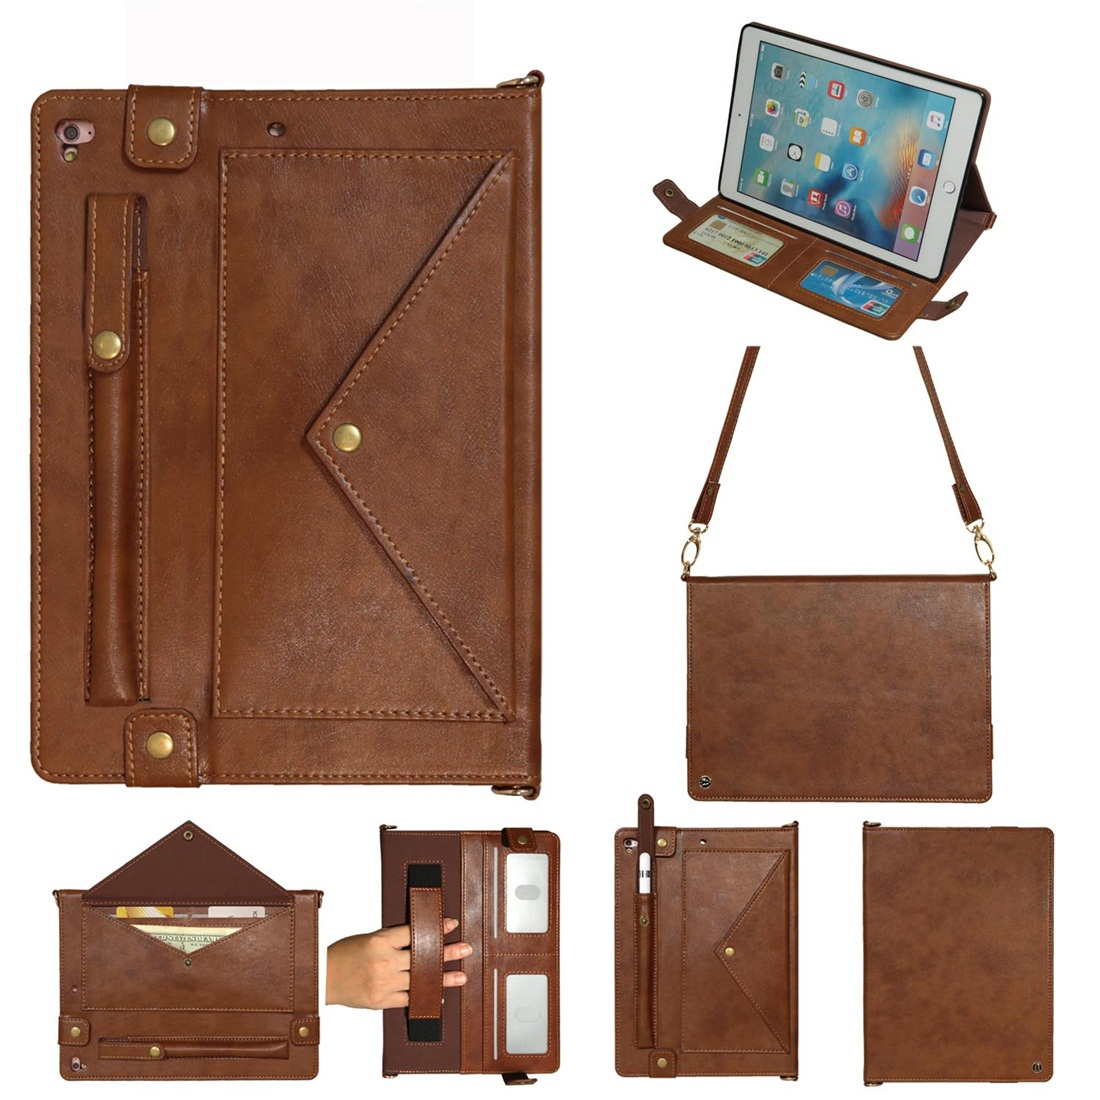 Leather iPad 9.7 Case (2018)/(2017), Air/ Air 2/ Pro 9.7 inch, Pen Holders & Strap (Coffee)